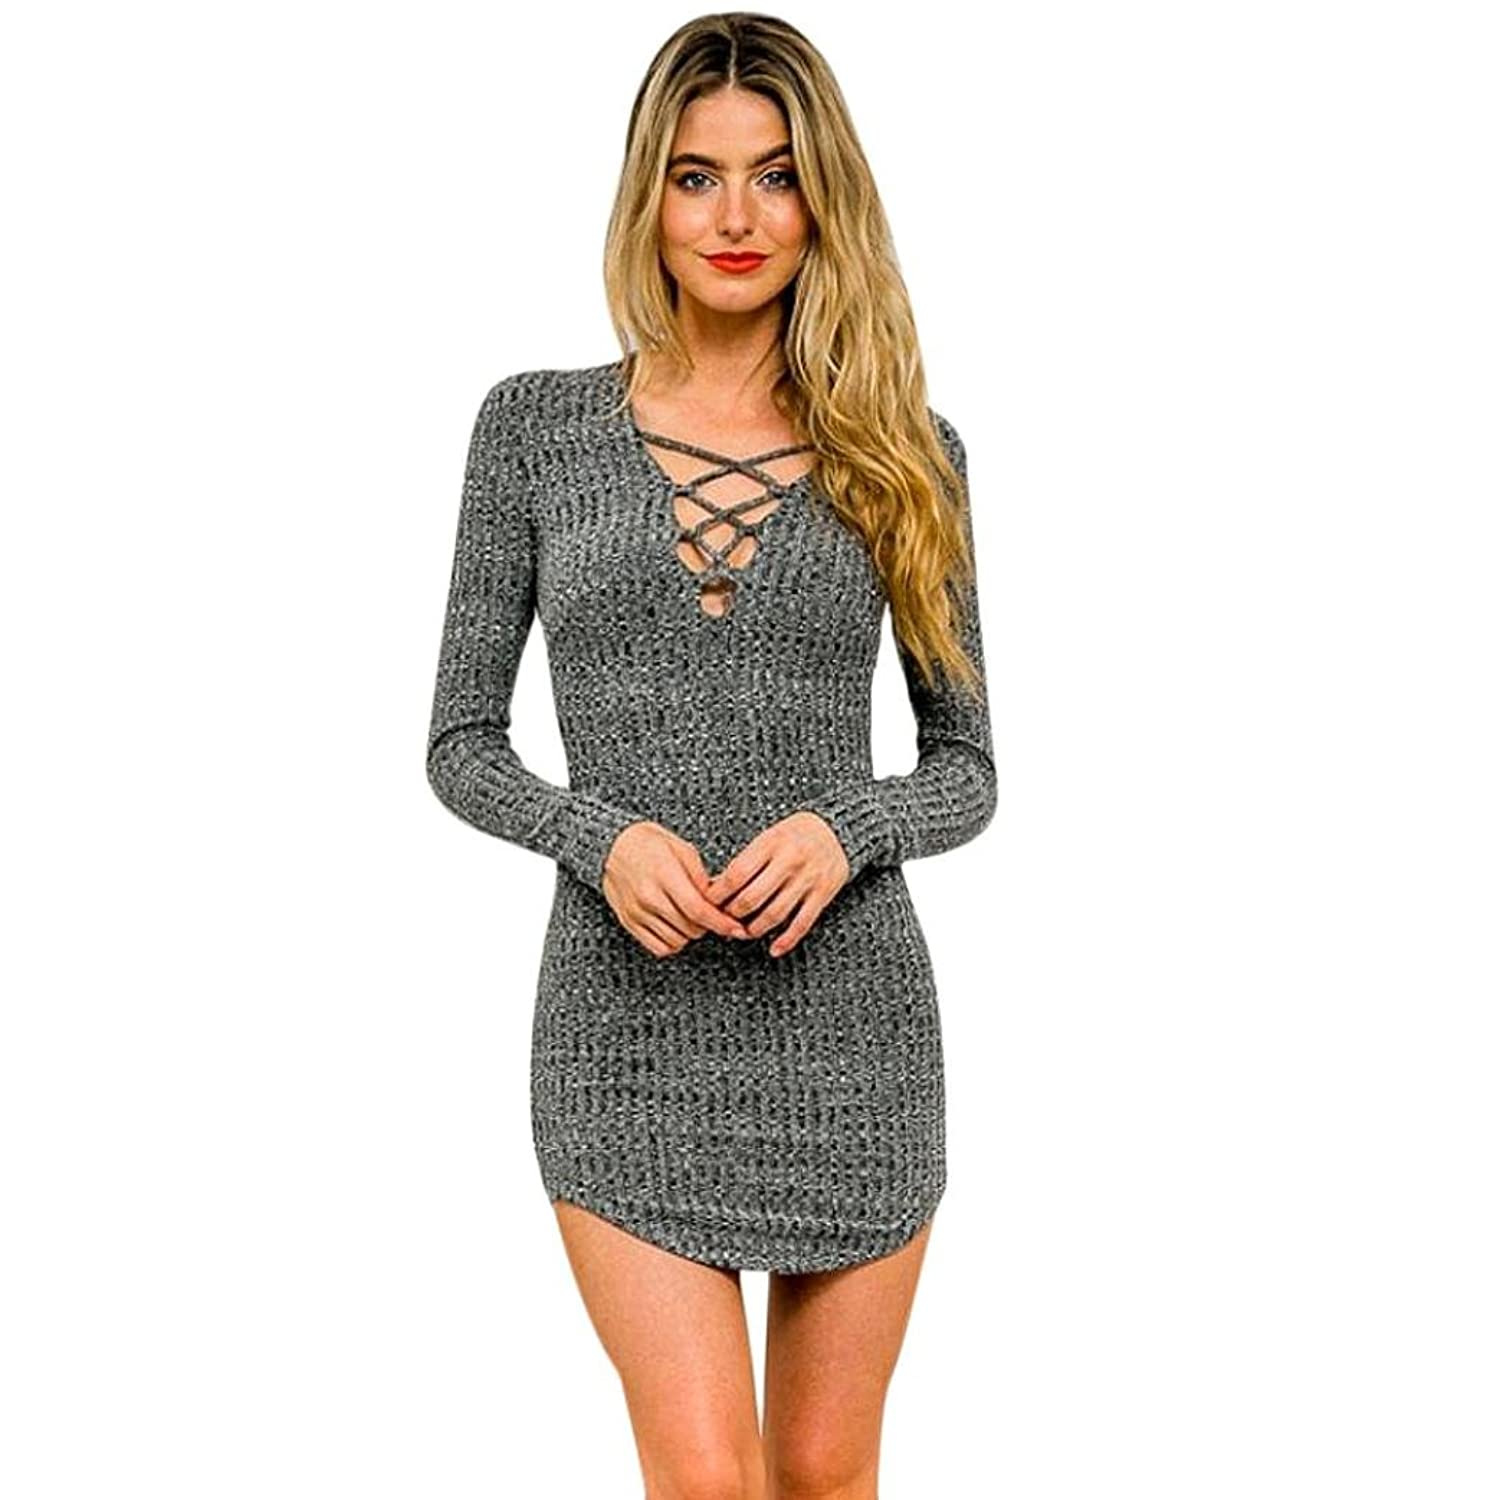 Malloom Sexy Women Lace Long Sleeve knitted Elasticity Cotton Bodycon Mini Dresses